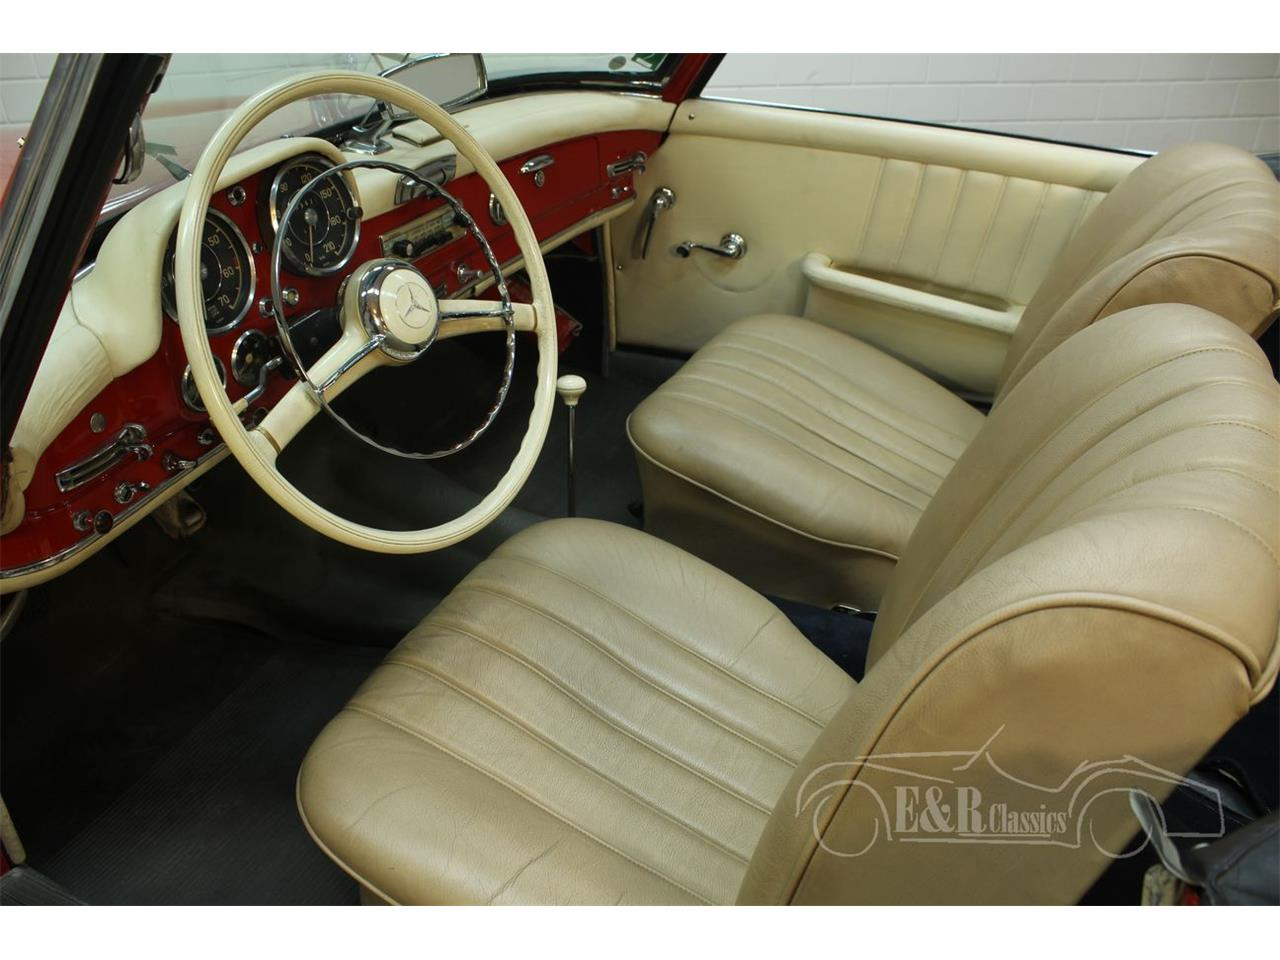 Large Picture of '56 Mercedes-Benz 190SL located in Waalwijk - Keine Angabe - - $118,450.00 - PH44